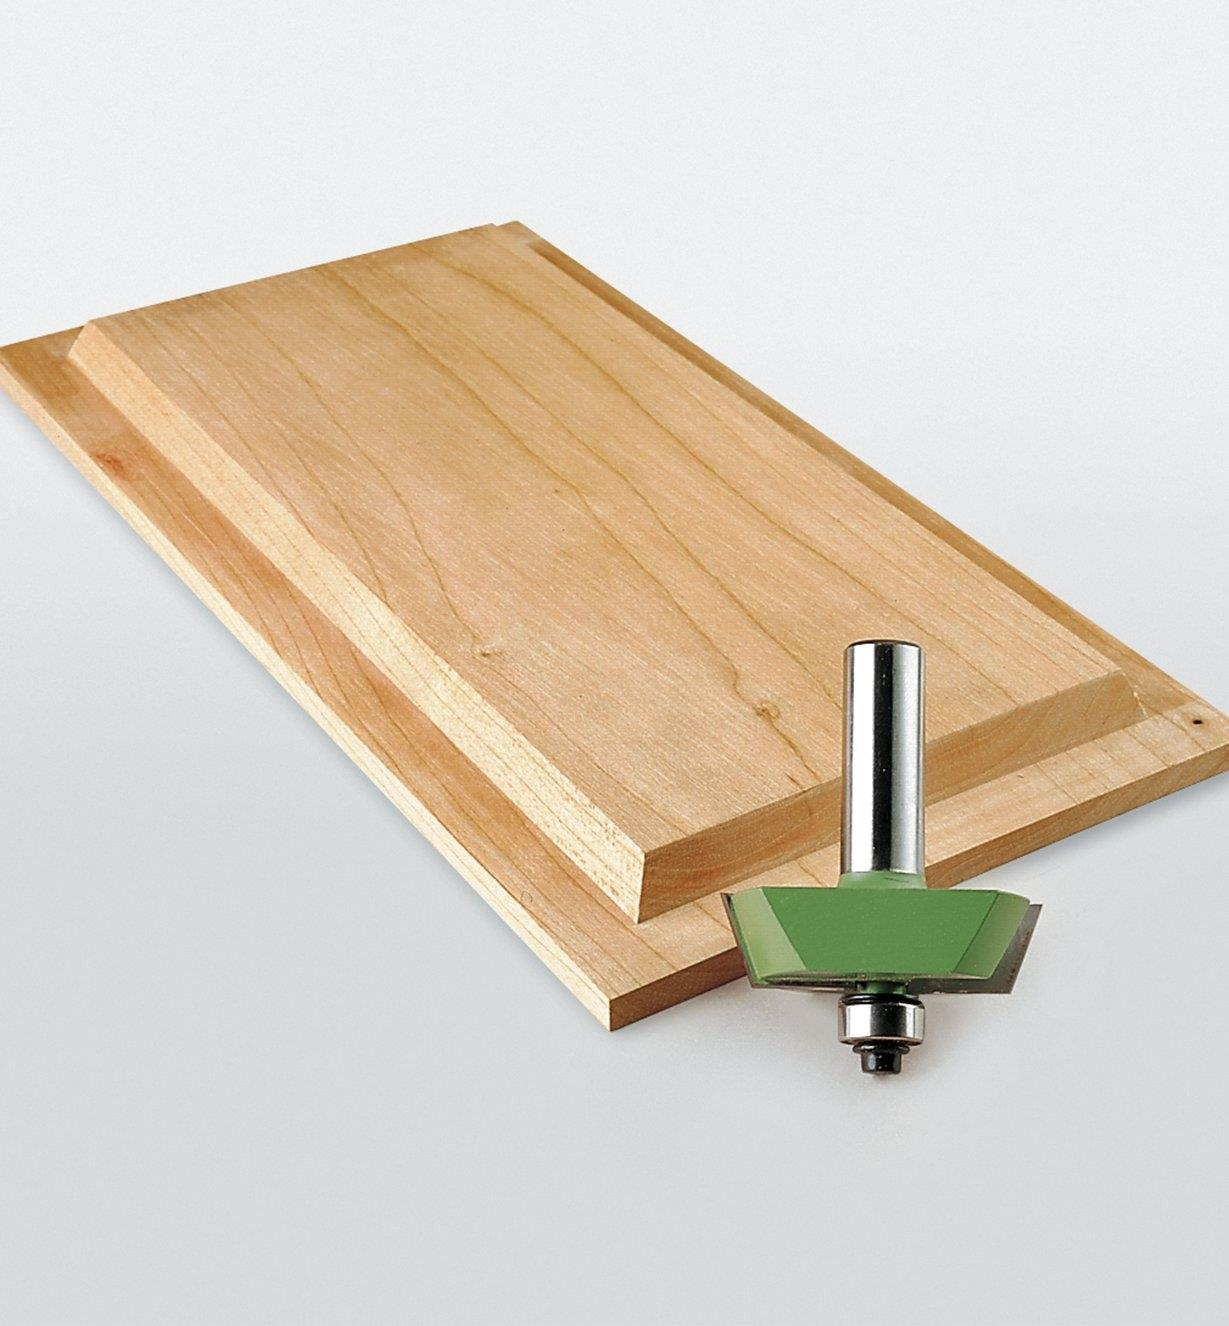 "16J6651 - 1 15/16"" x 1/2"" x 1/2"" Panel Raising Bit for Shaker-Style Doors"